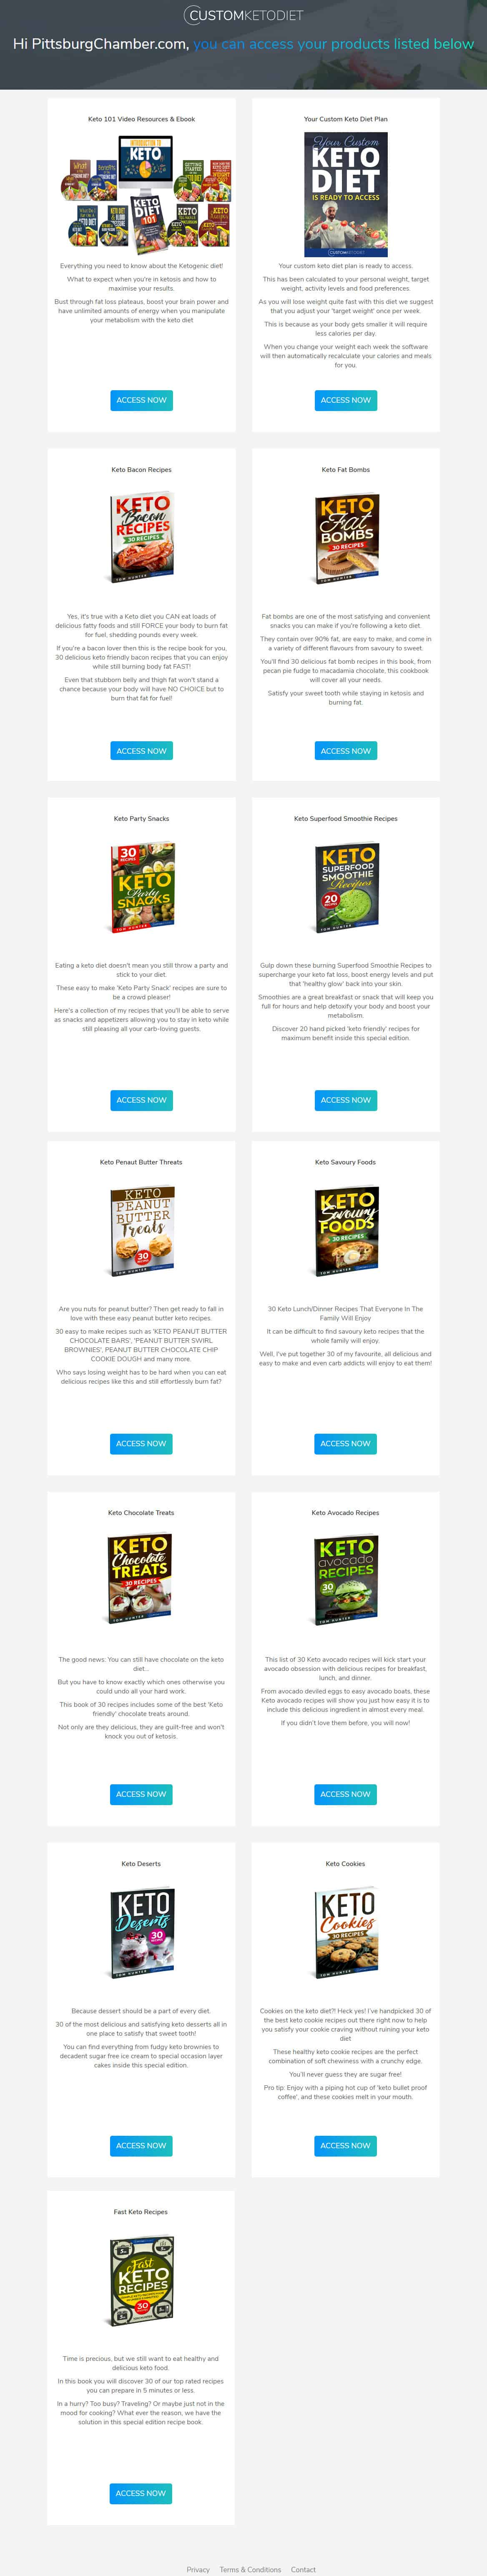 Plan Custom Keto Diet Warranty Coupon Code April  2020